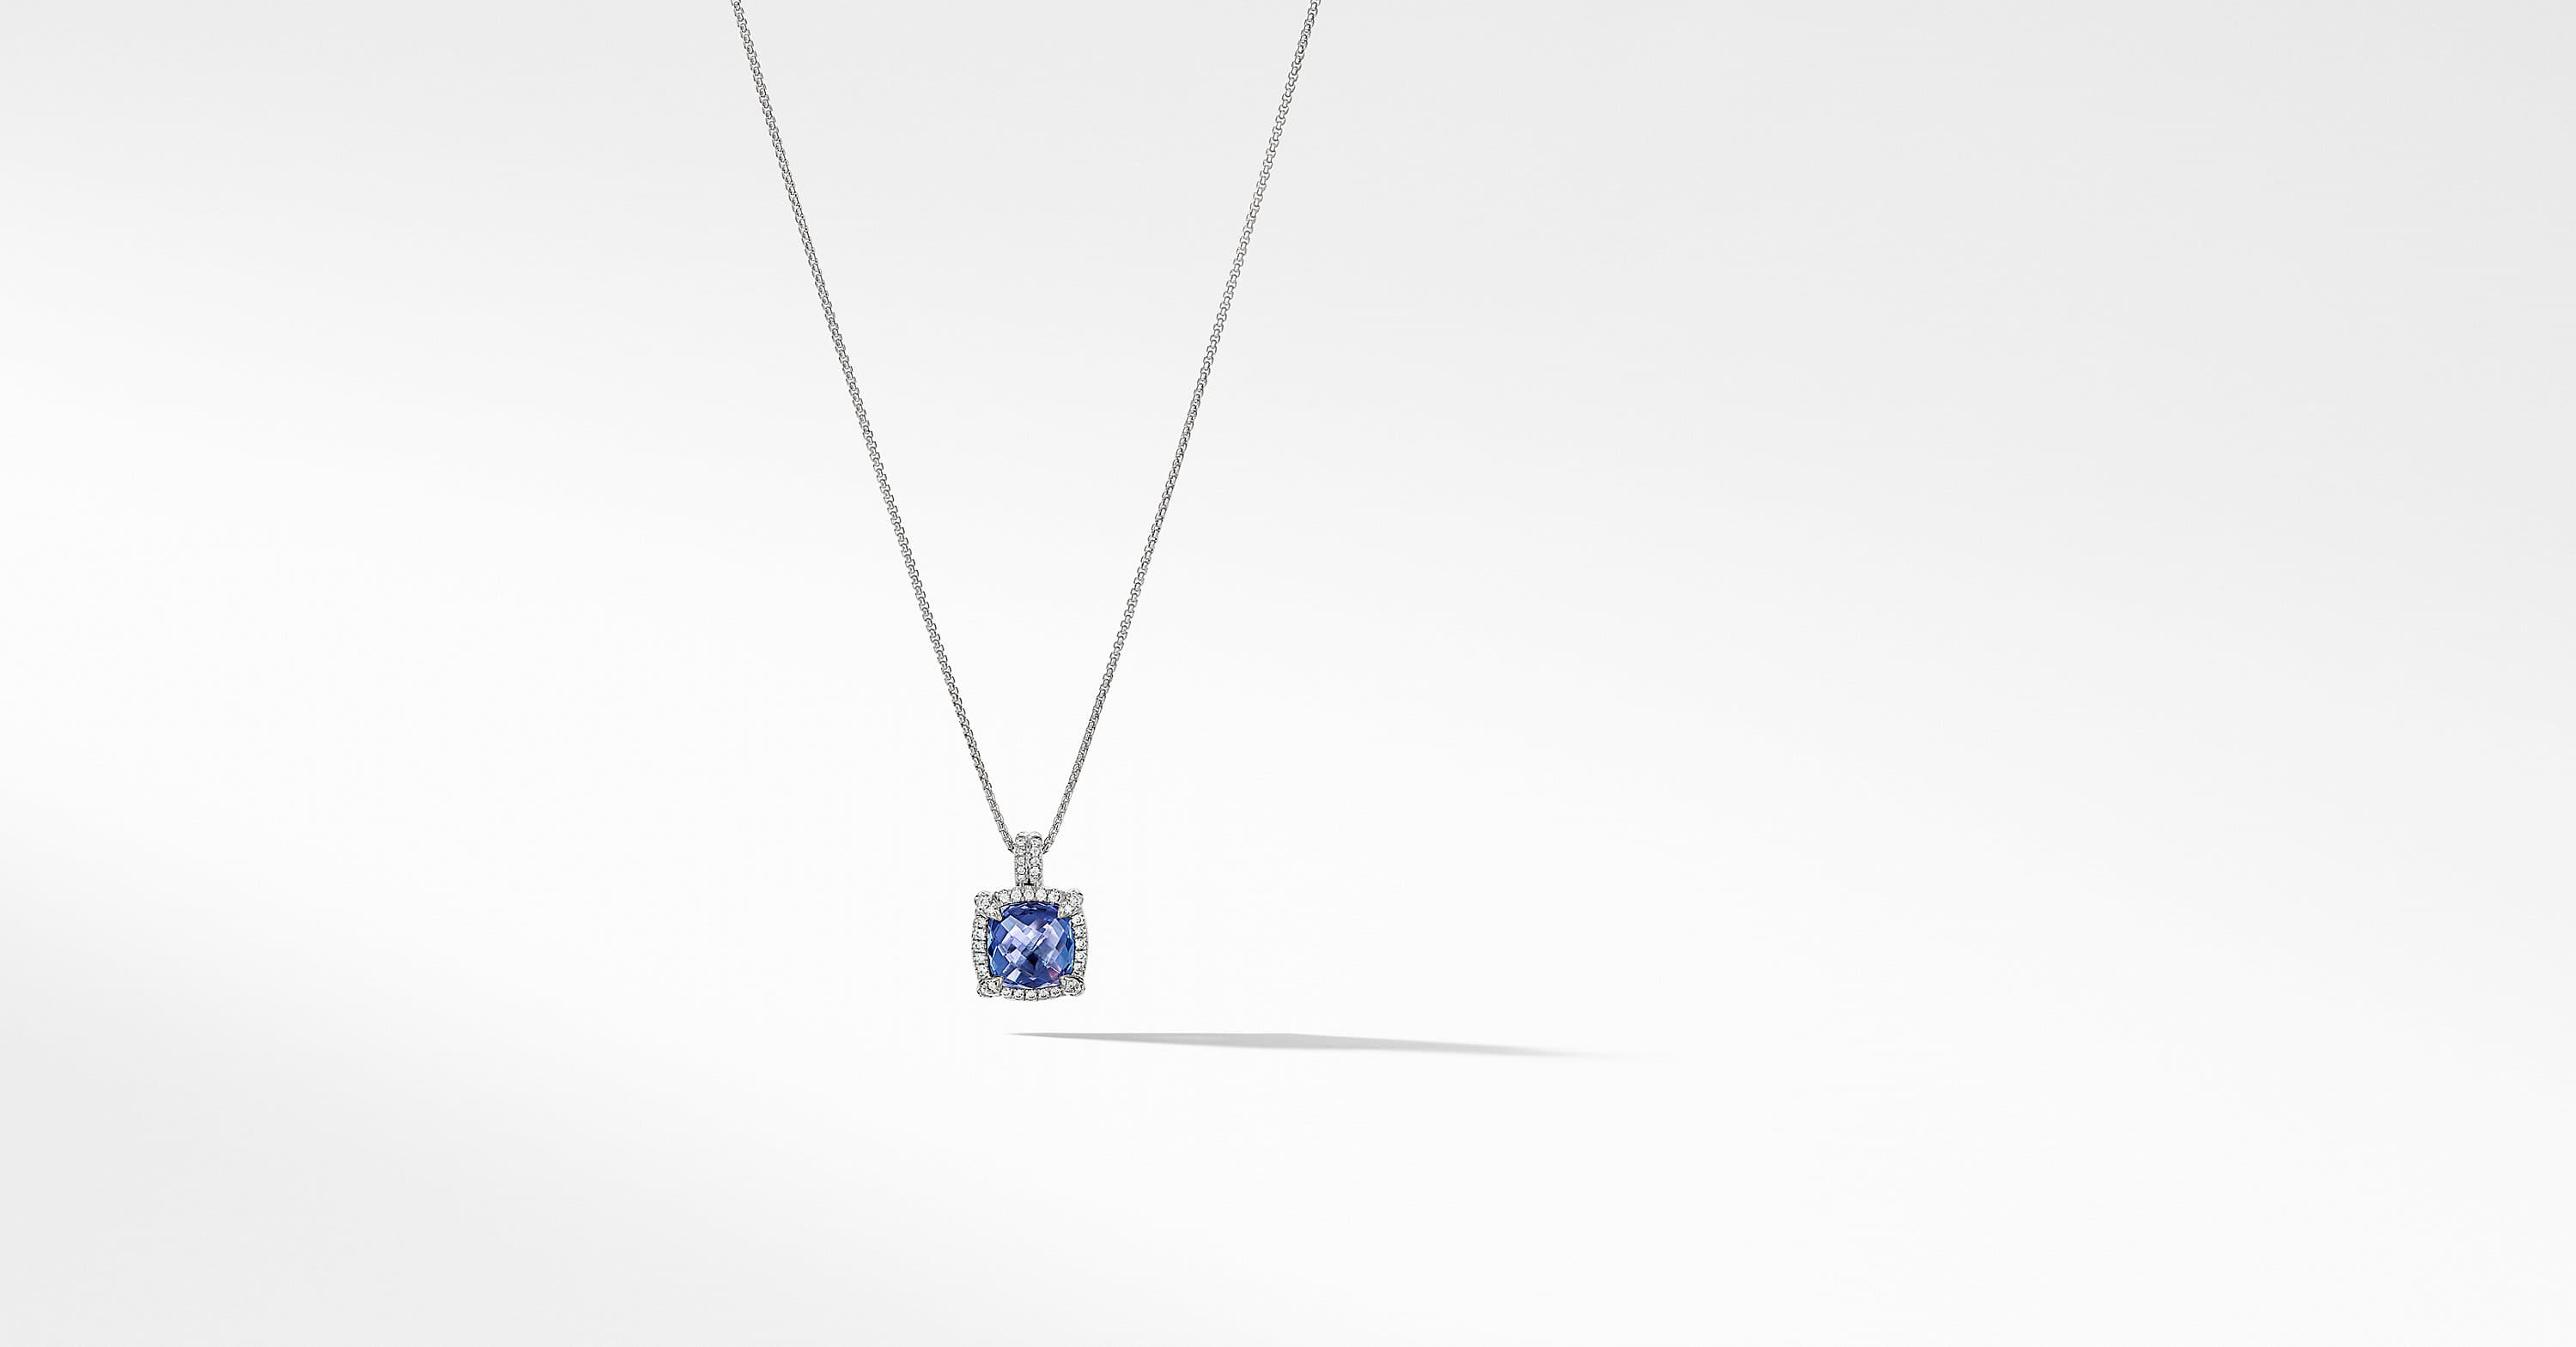 Châtelaine Pave Bezel Pendant Necklace with Diamonds in 18K White Gold